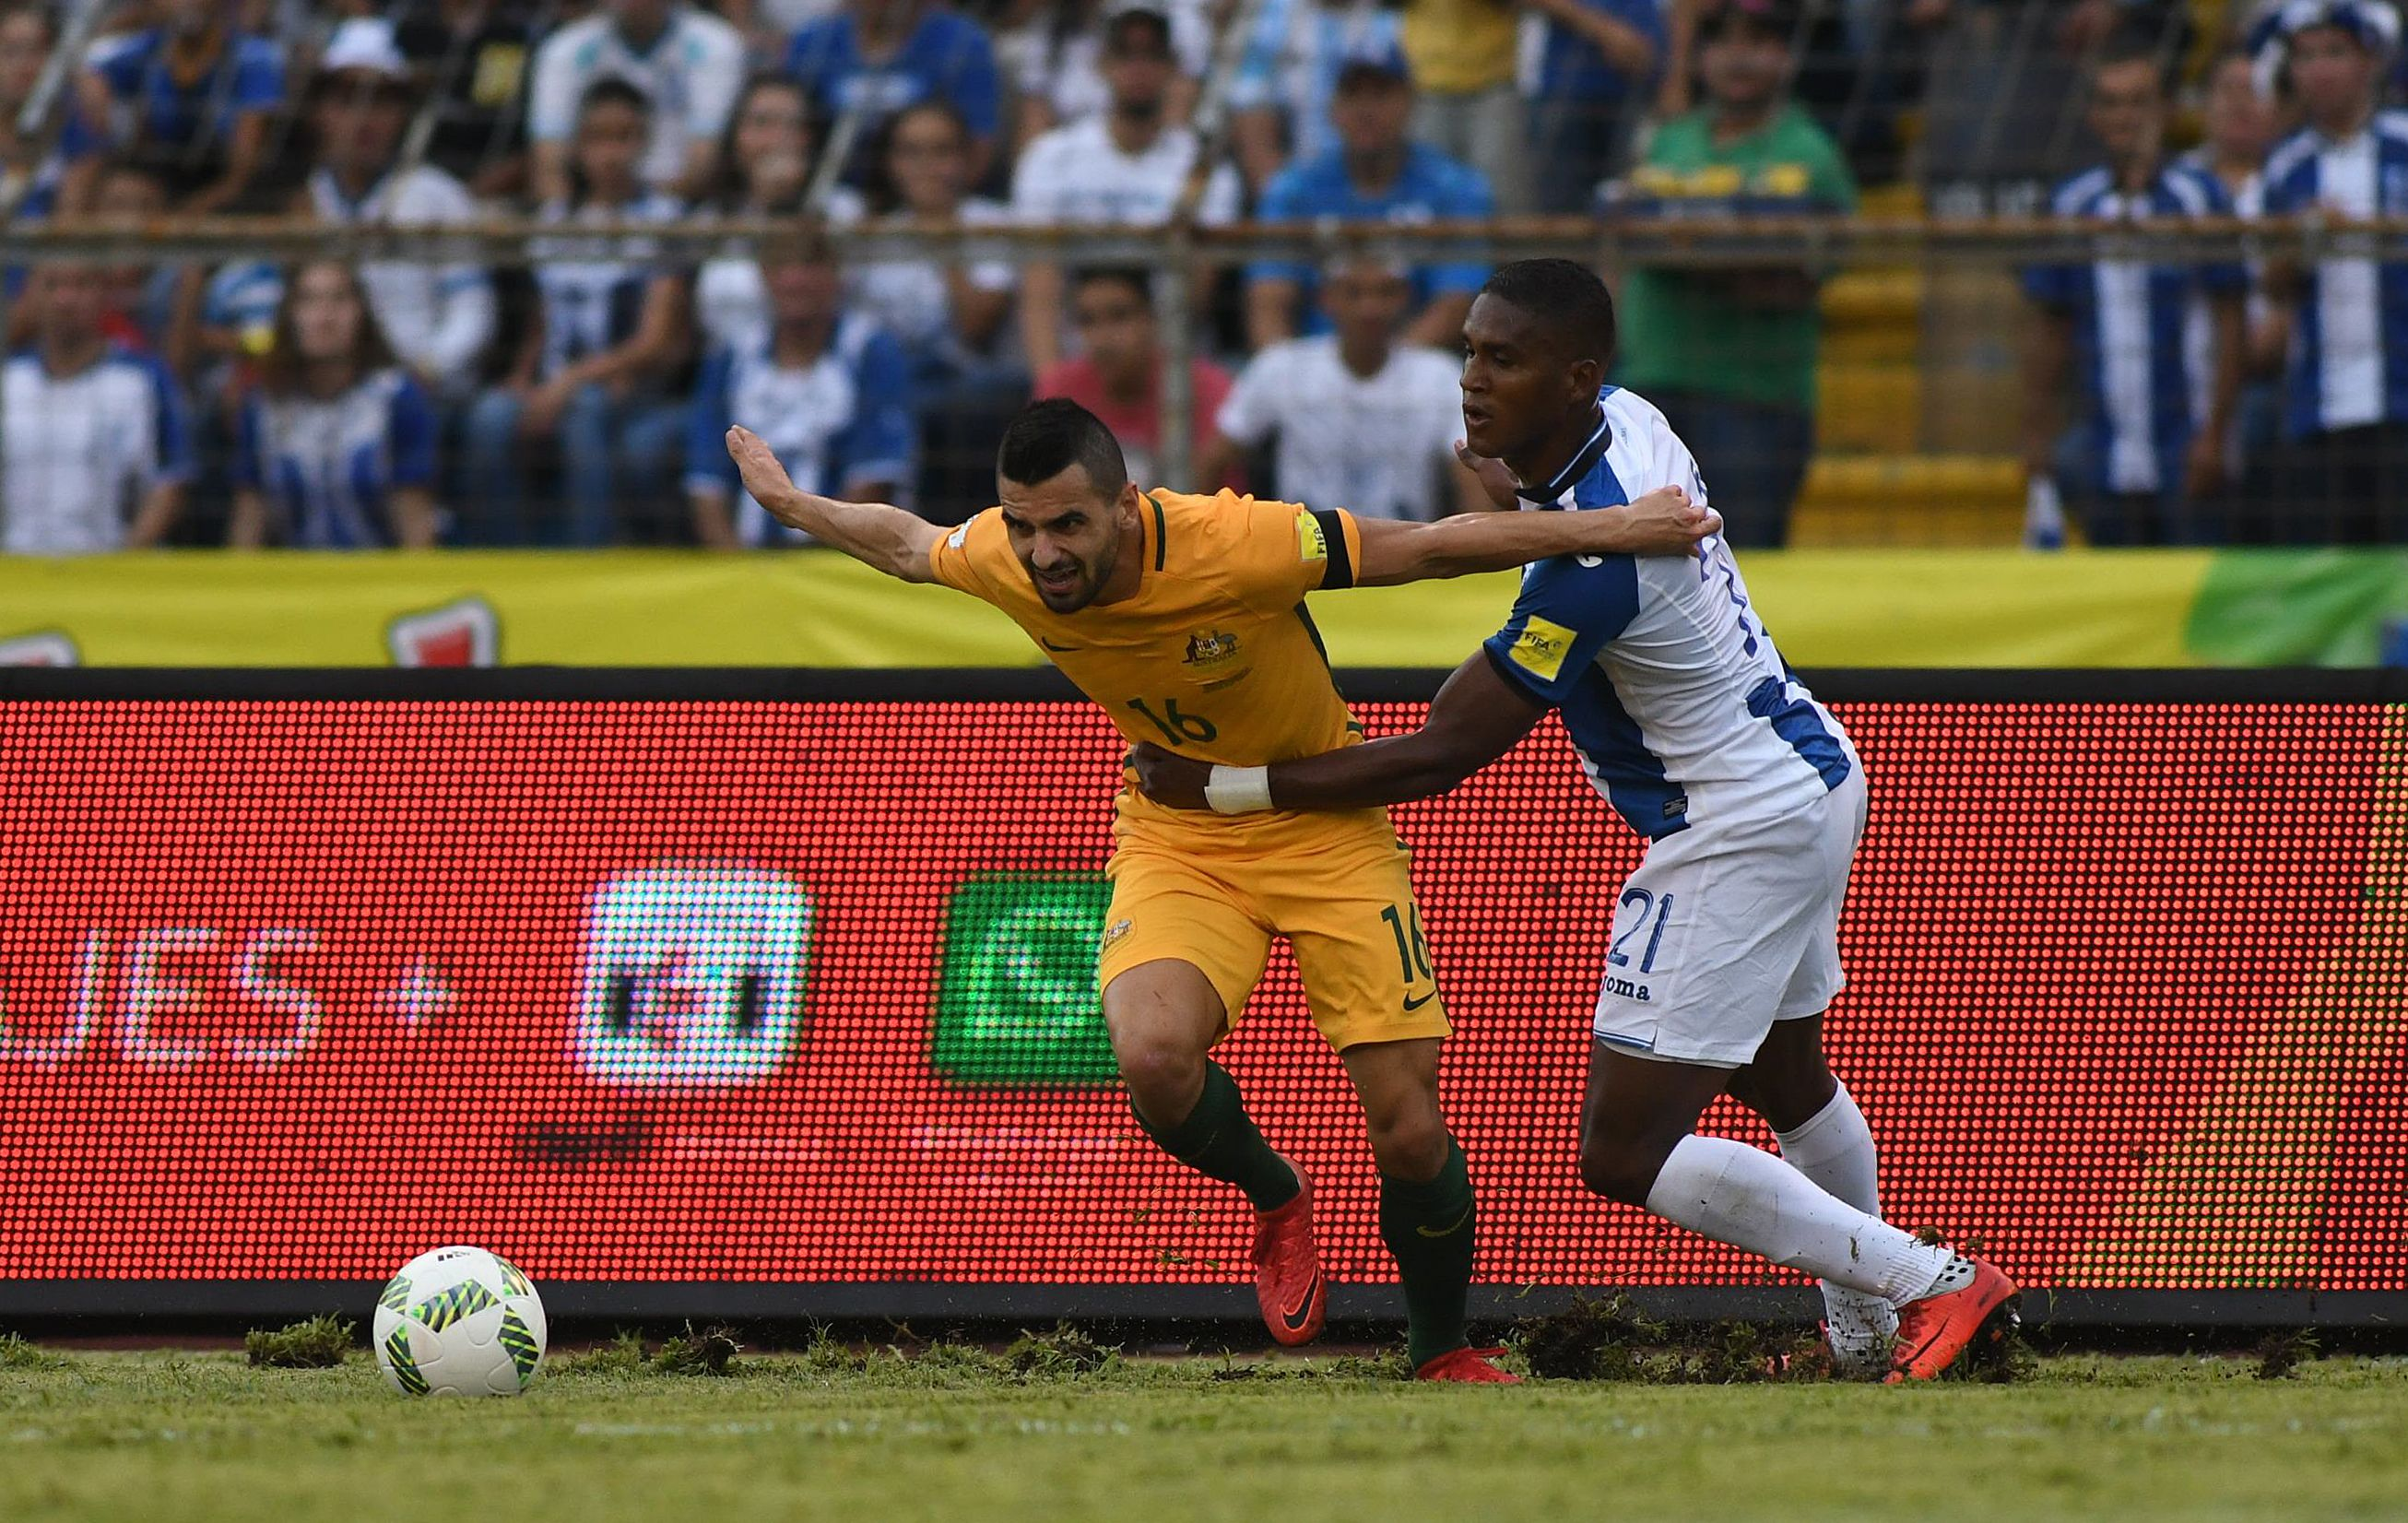 Aziz Behich proved a handful for the Honduran defence.